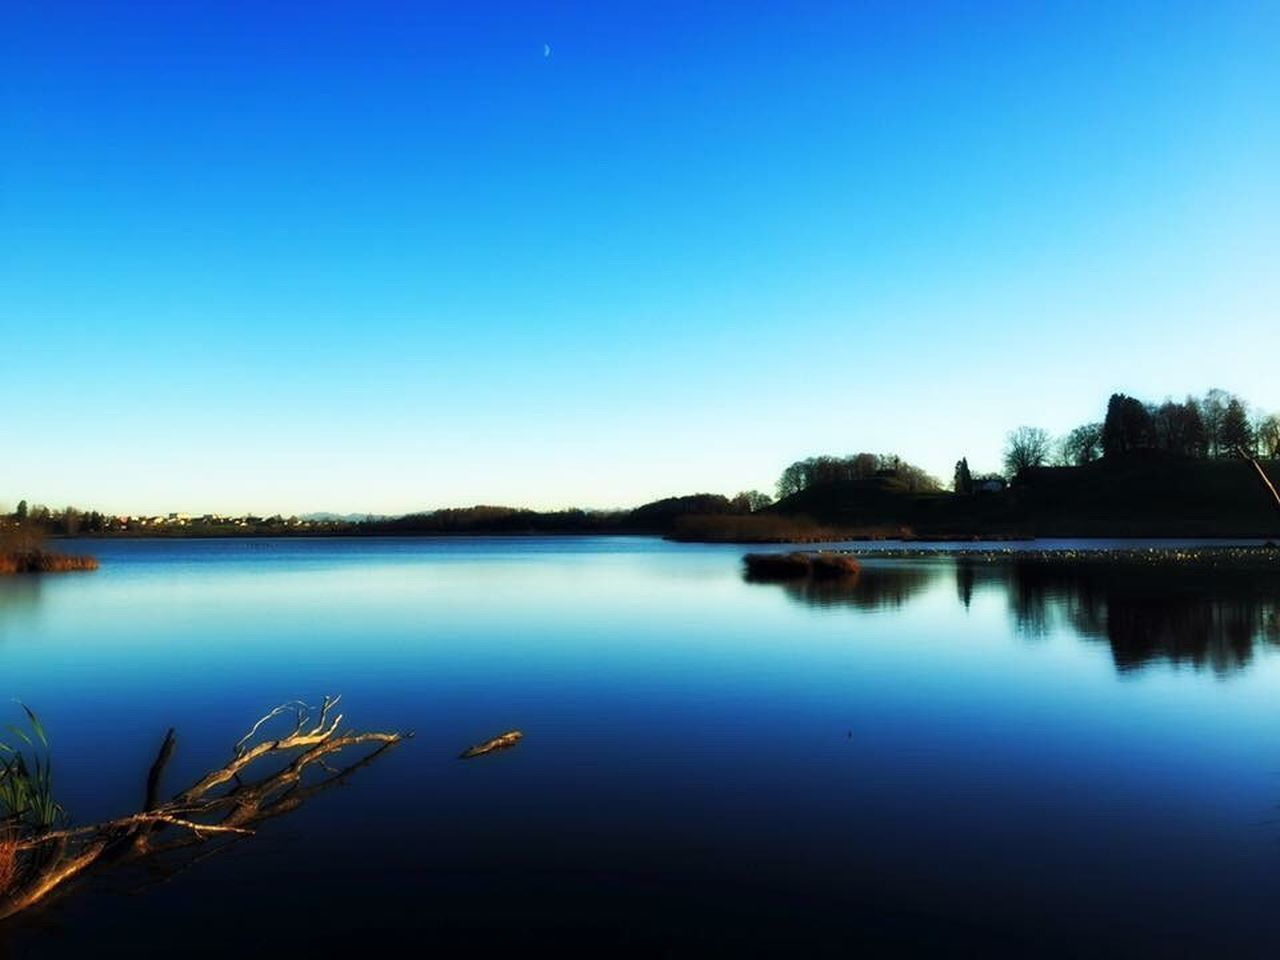 water, lake, tranquil scene, reflection, tranquility, nature, beauty in nature, scenics, blue, copy space, tree, clear sky, outdoors, no people, standing water, day, sky